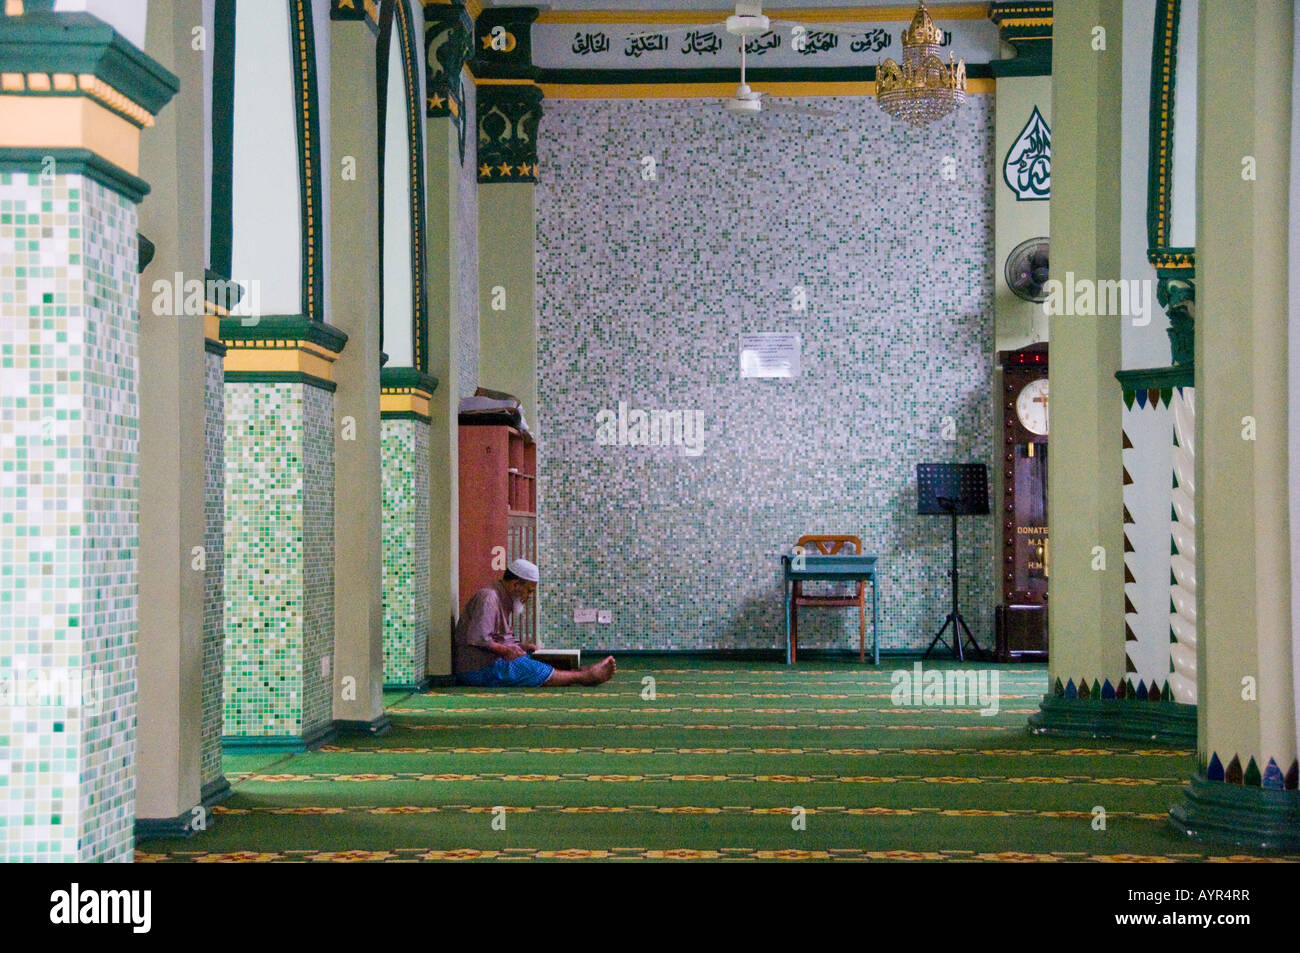 mount ayr muslim personals History of madinah munawwarah $1079  there is no muslim of true faith who does not feel himself called at all times by an overwhelming desire to  --- mount 'ayr.